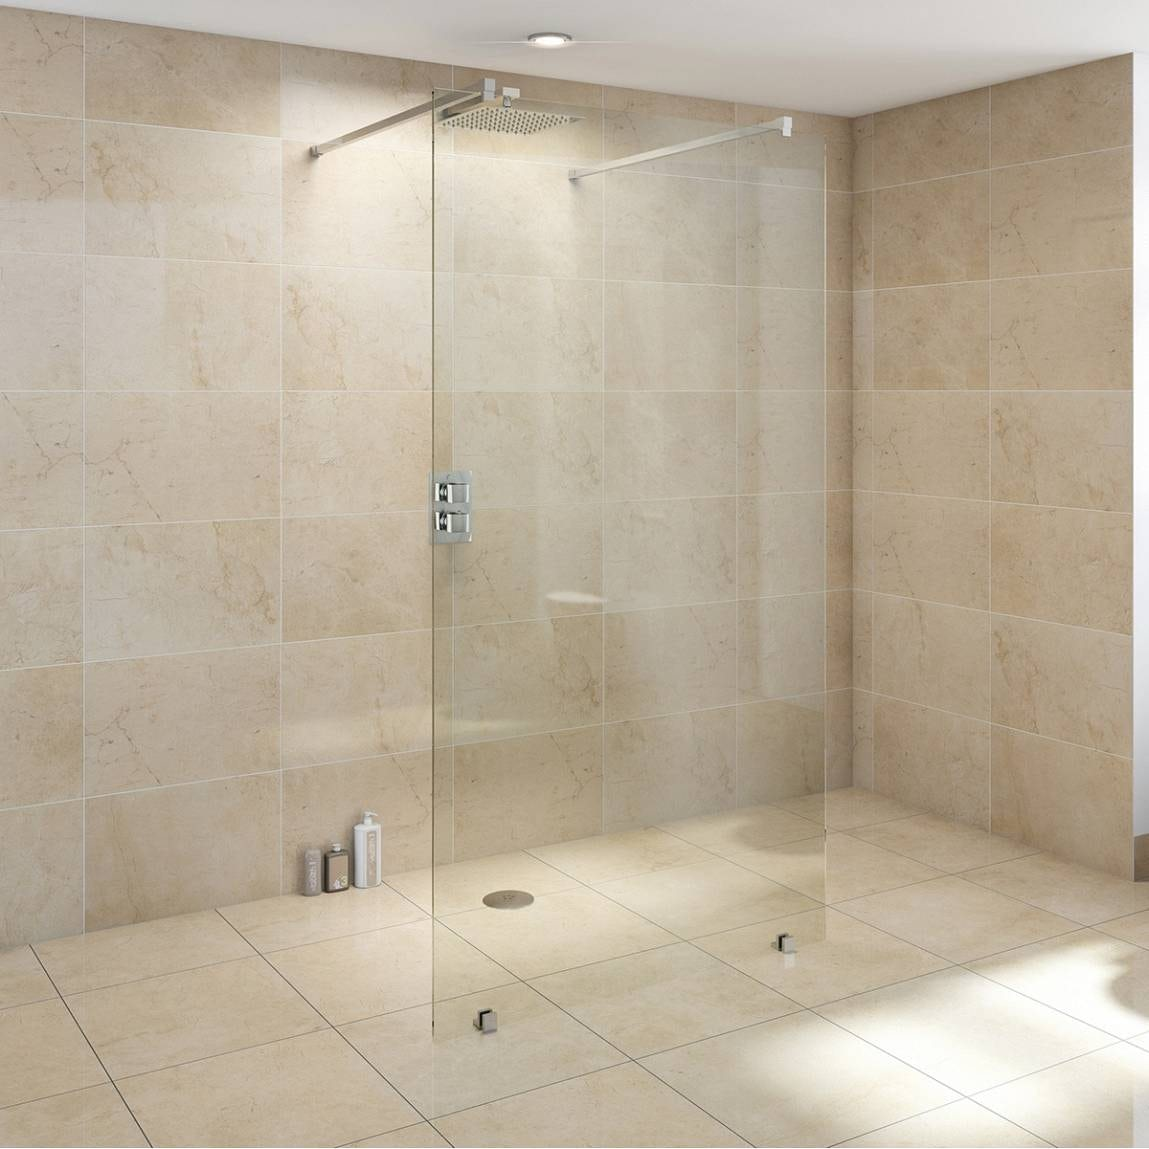 Mode premium 10mm wet room glass panel - Wet rooms in small spaces minimalist ...